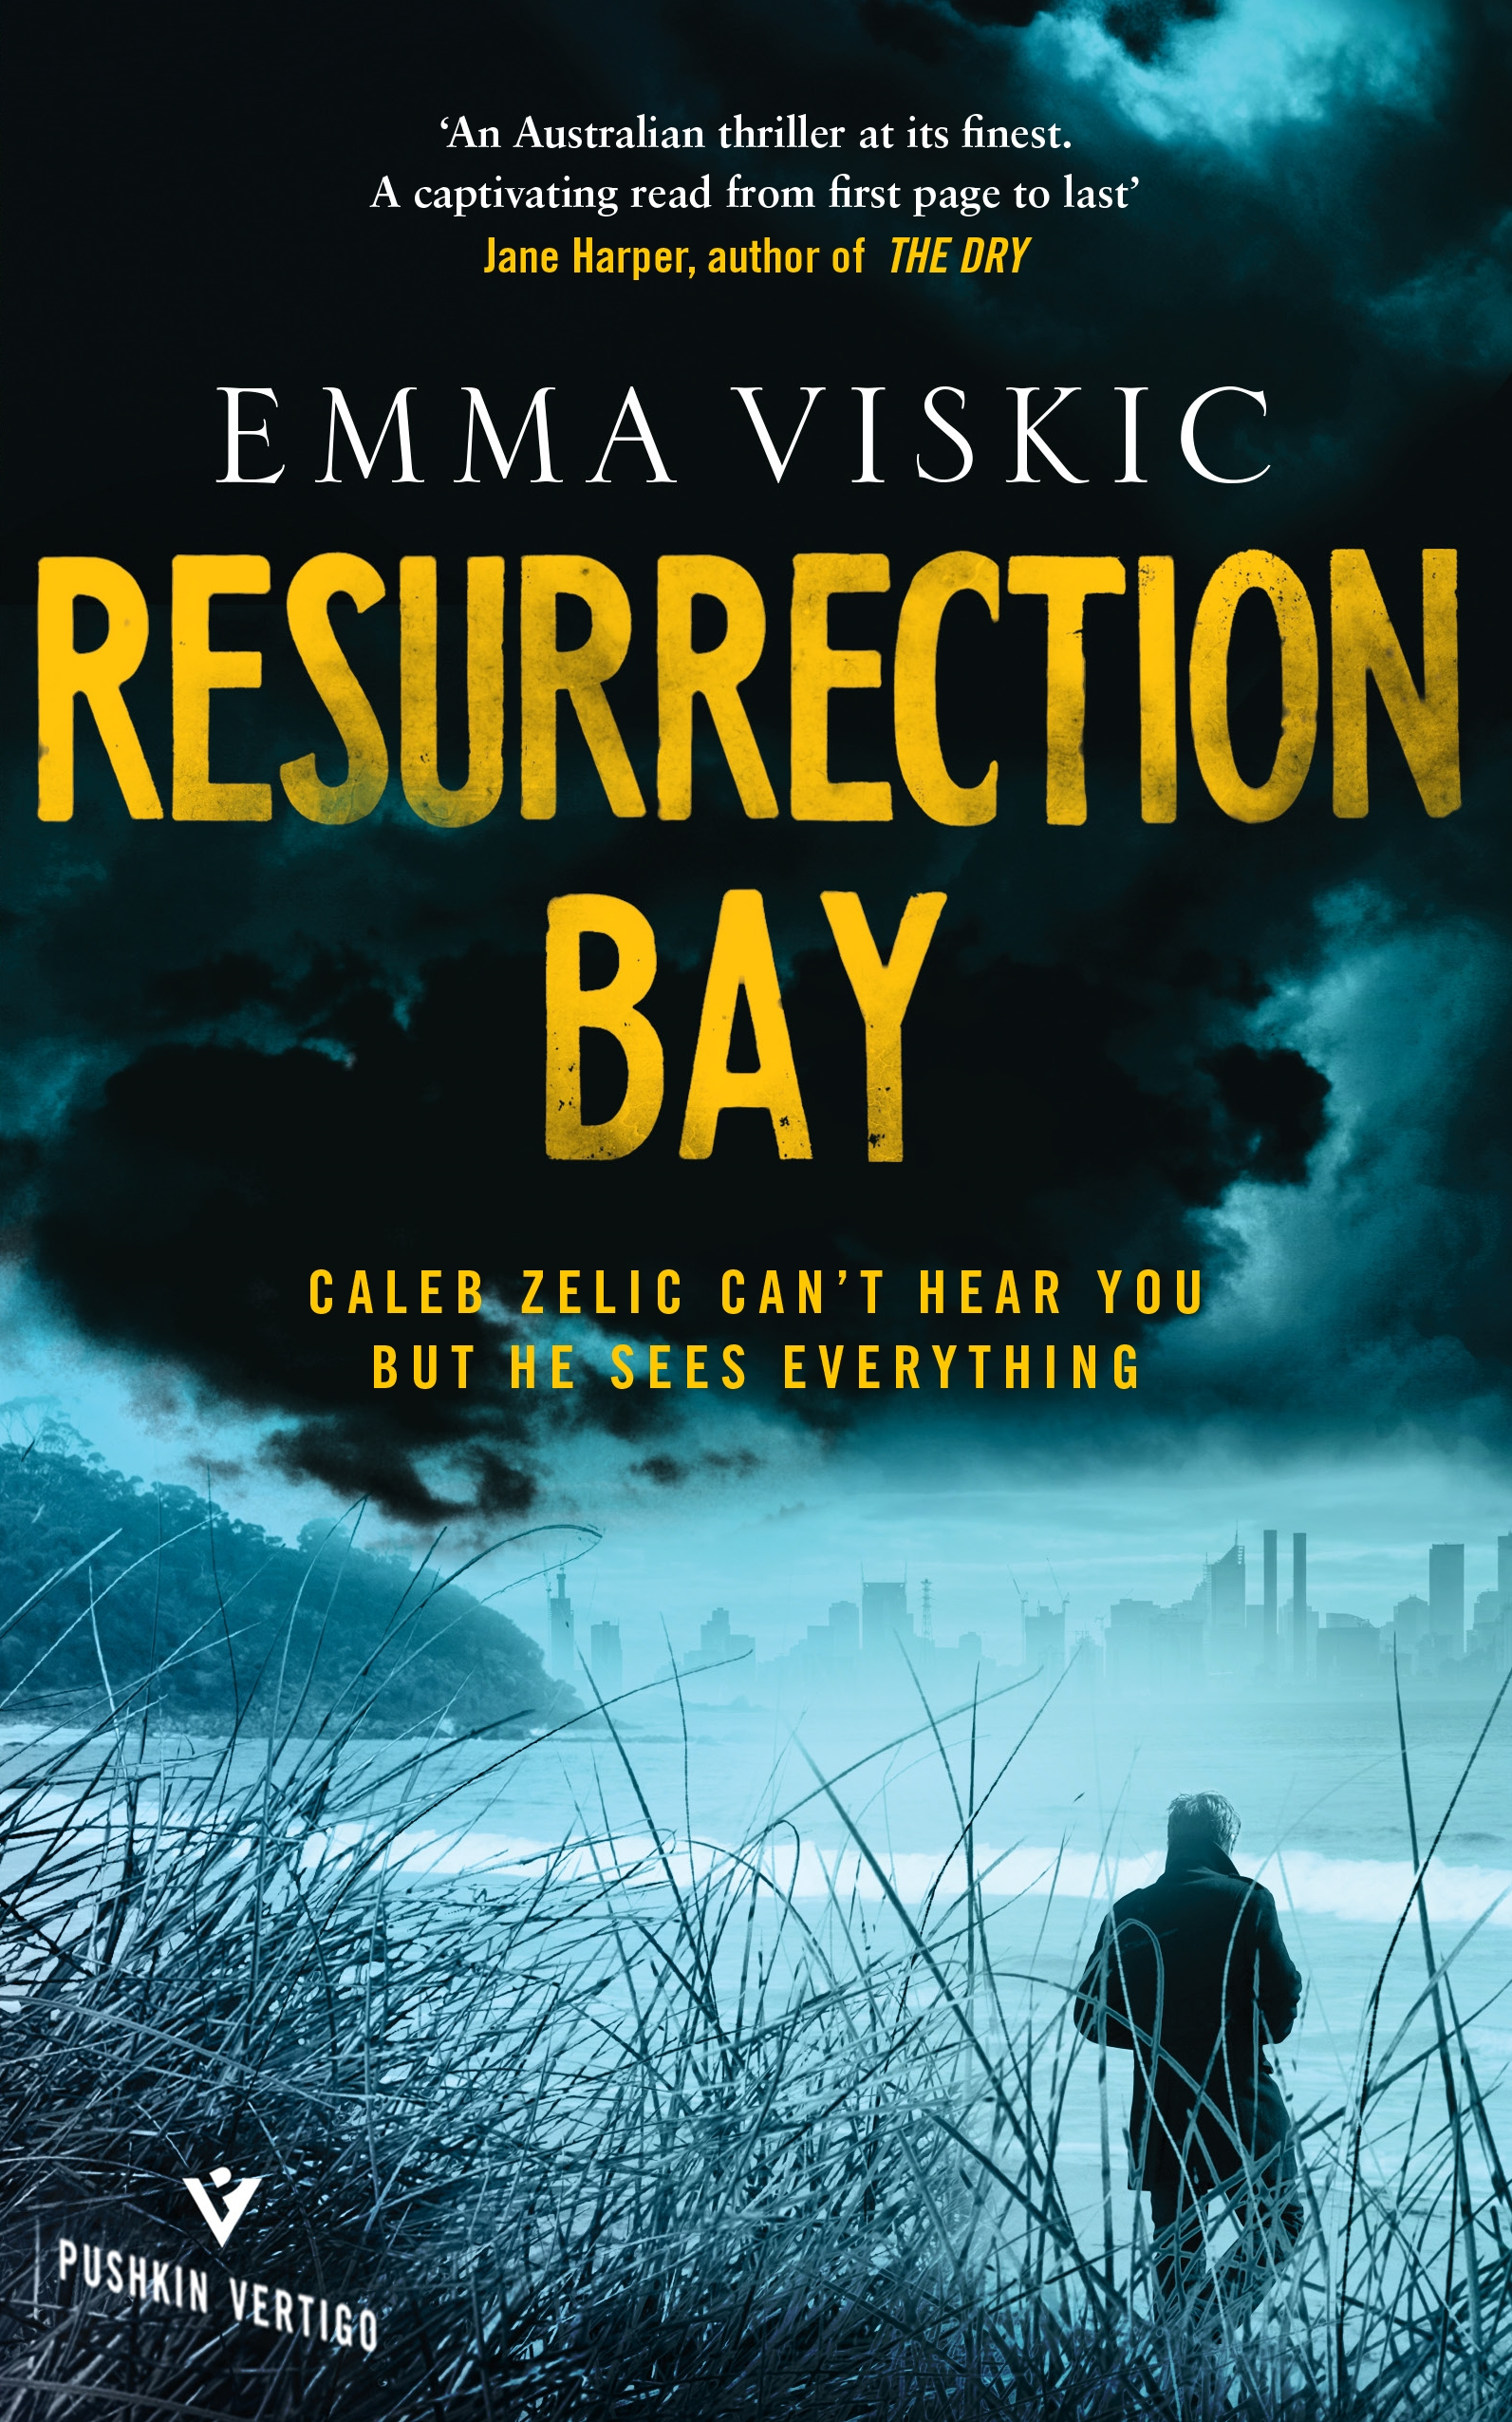 4 stars mrs peabody investigates emma viskic resurrection bay pushkin vertigo 2017 2015 biocorpaavc Image collections